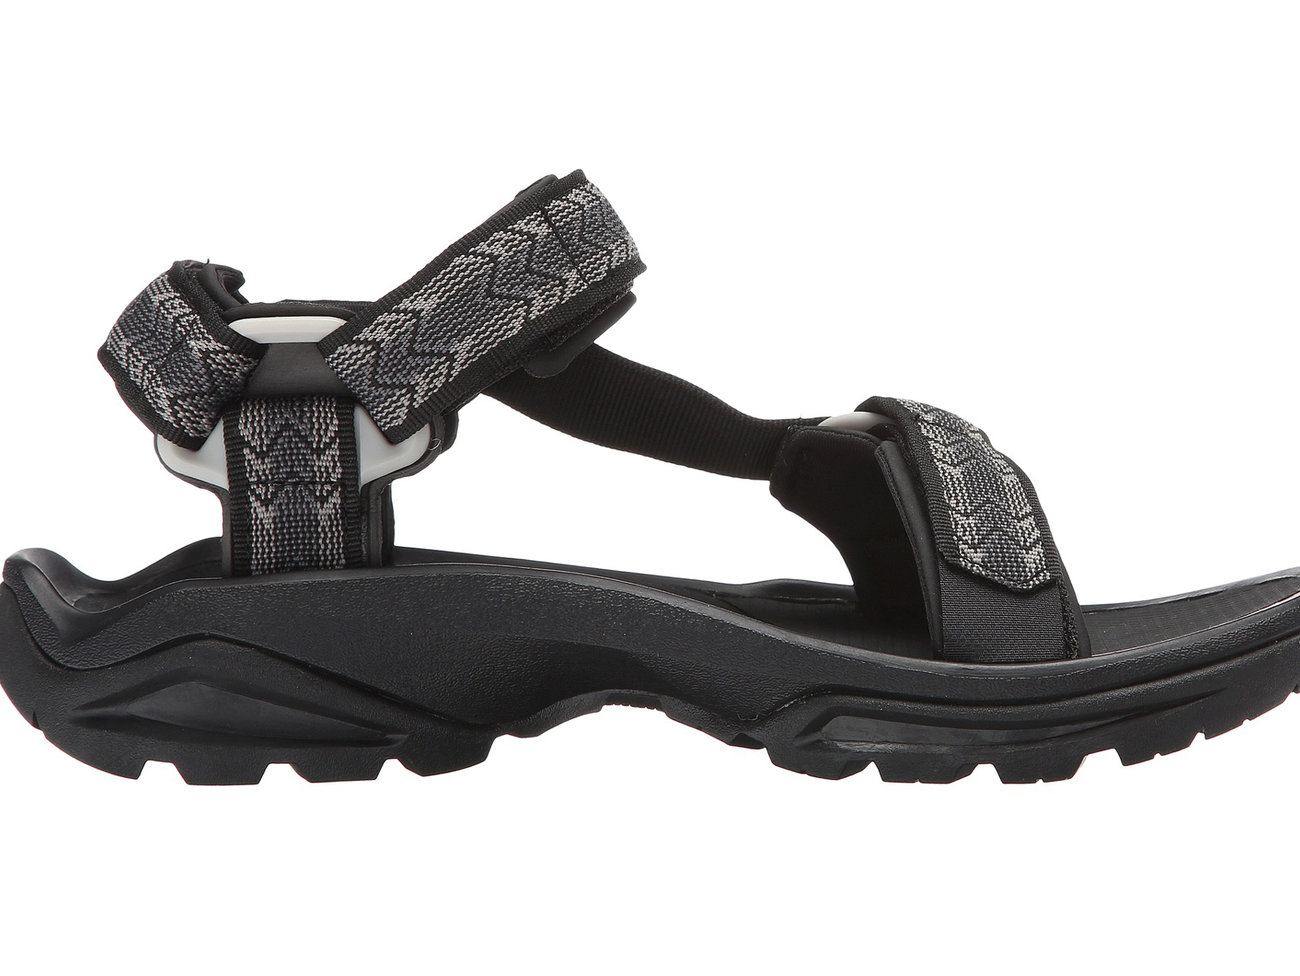 exclusive shoes meet preview of Best Hiking Sandals for Men | Travel + Leisure | Travel + Leisure